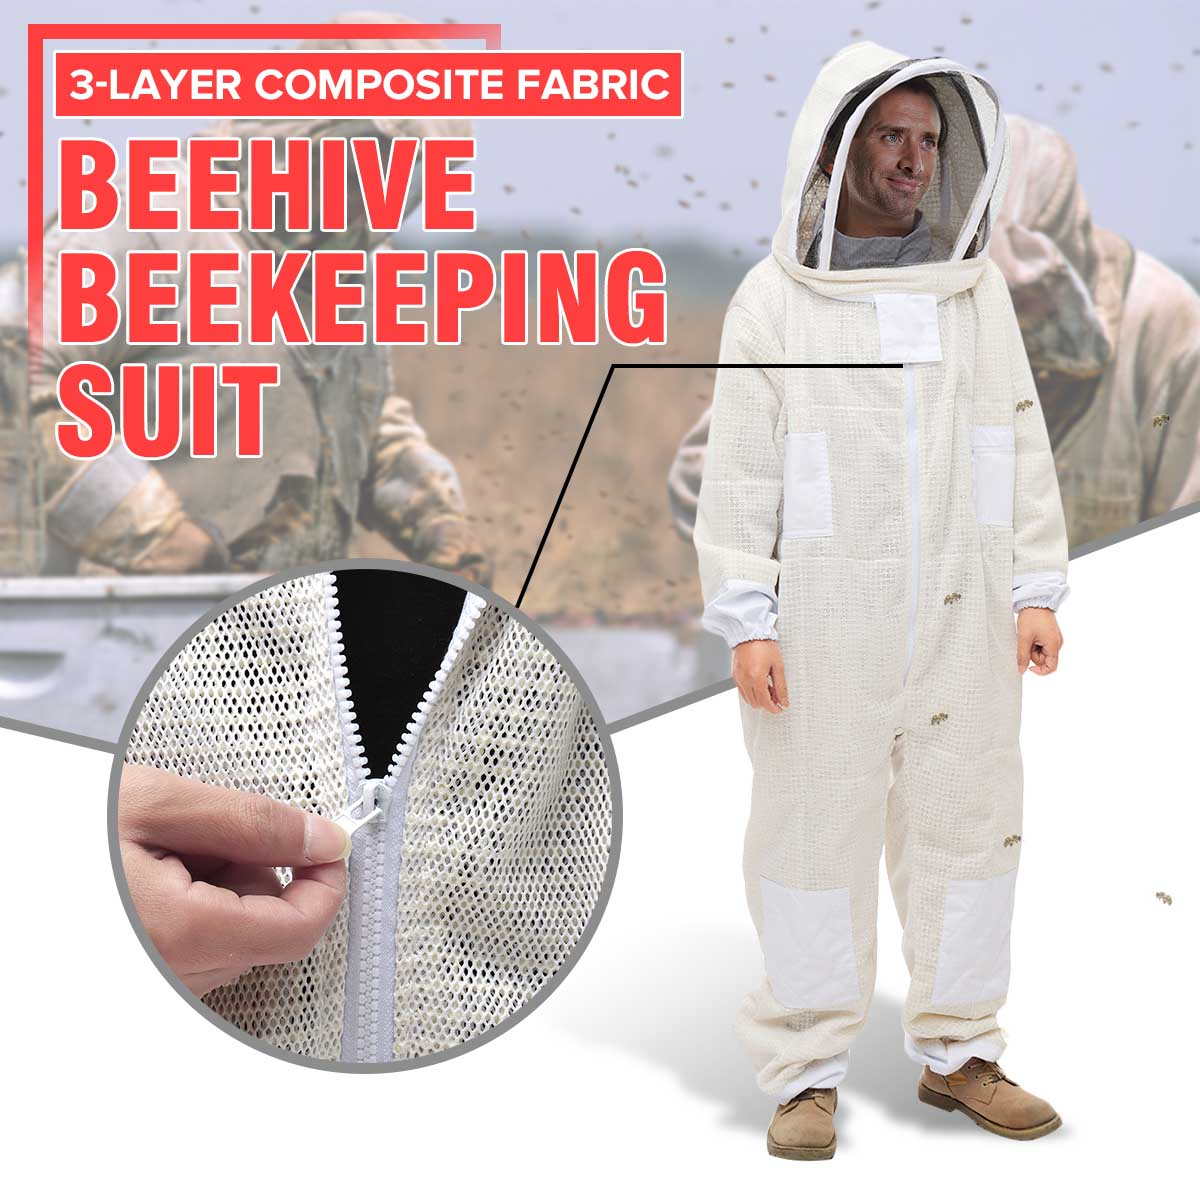 3 Layer Beekeeping Beekeeper Bee Suit Breathable Siamese Design HD Surface Net Protective Suit Full Body Beekeeping Clothing Hat3 Layer Beekeeping Beekeeper Bee Suit Breathable Siamese Design HD Surface Net Protective Suit Full Body Beekeeping Clothing Hat